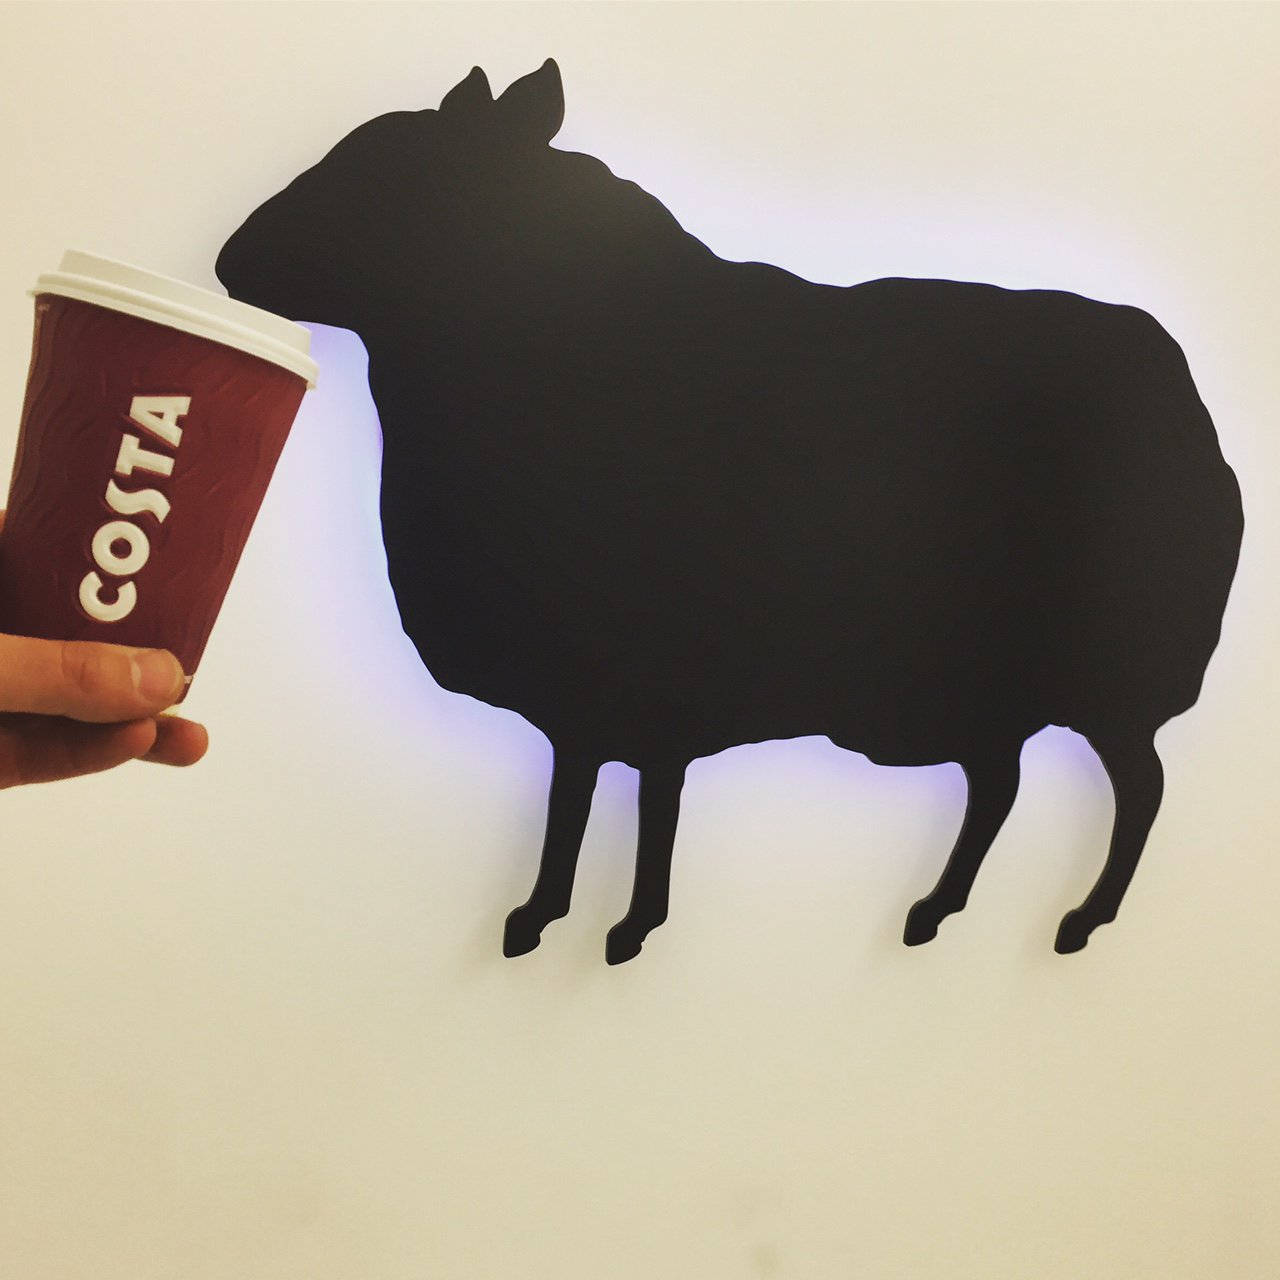 Welcome to Kingly Street, @CostaCoffee https://t.co/uZgZiByzQl https://t.co/gLnmybXJis